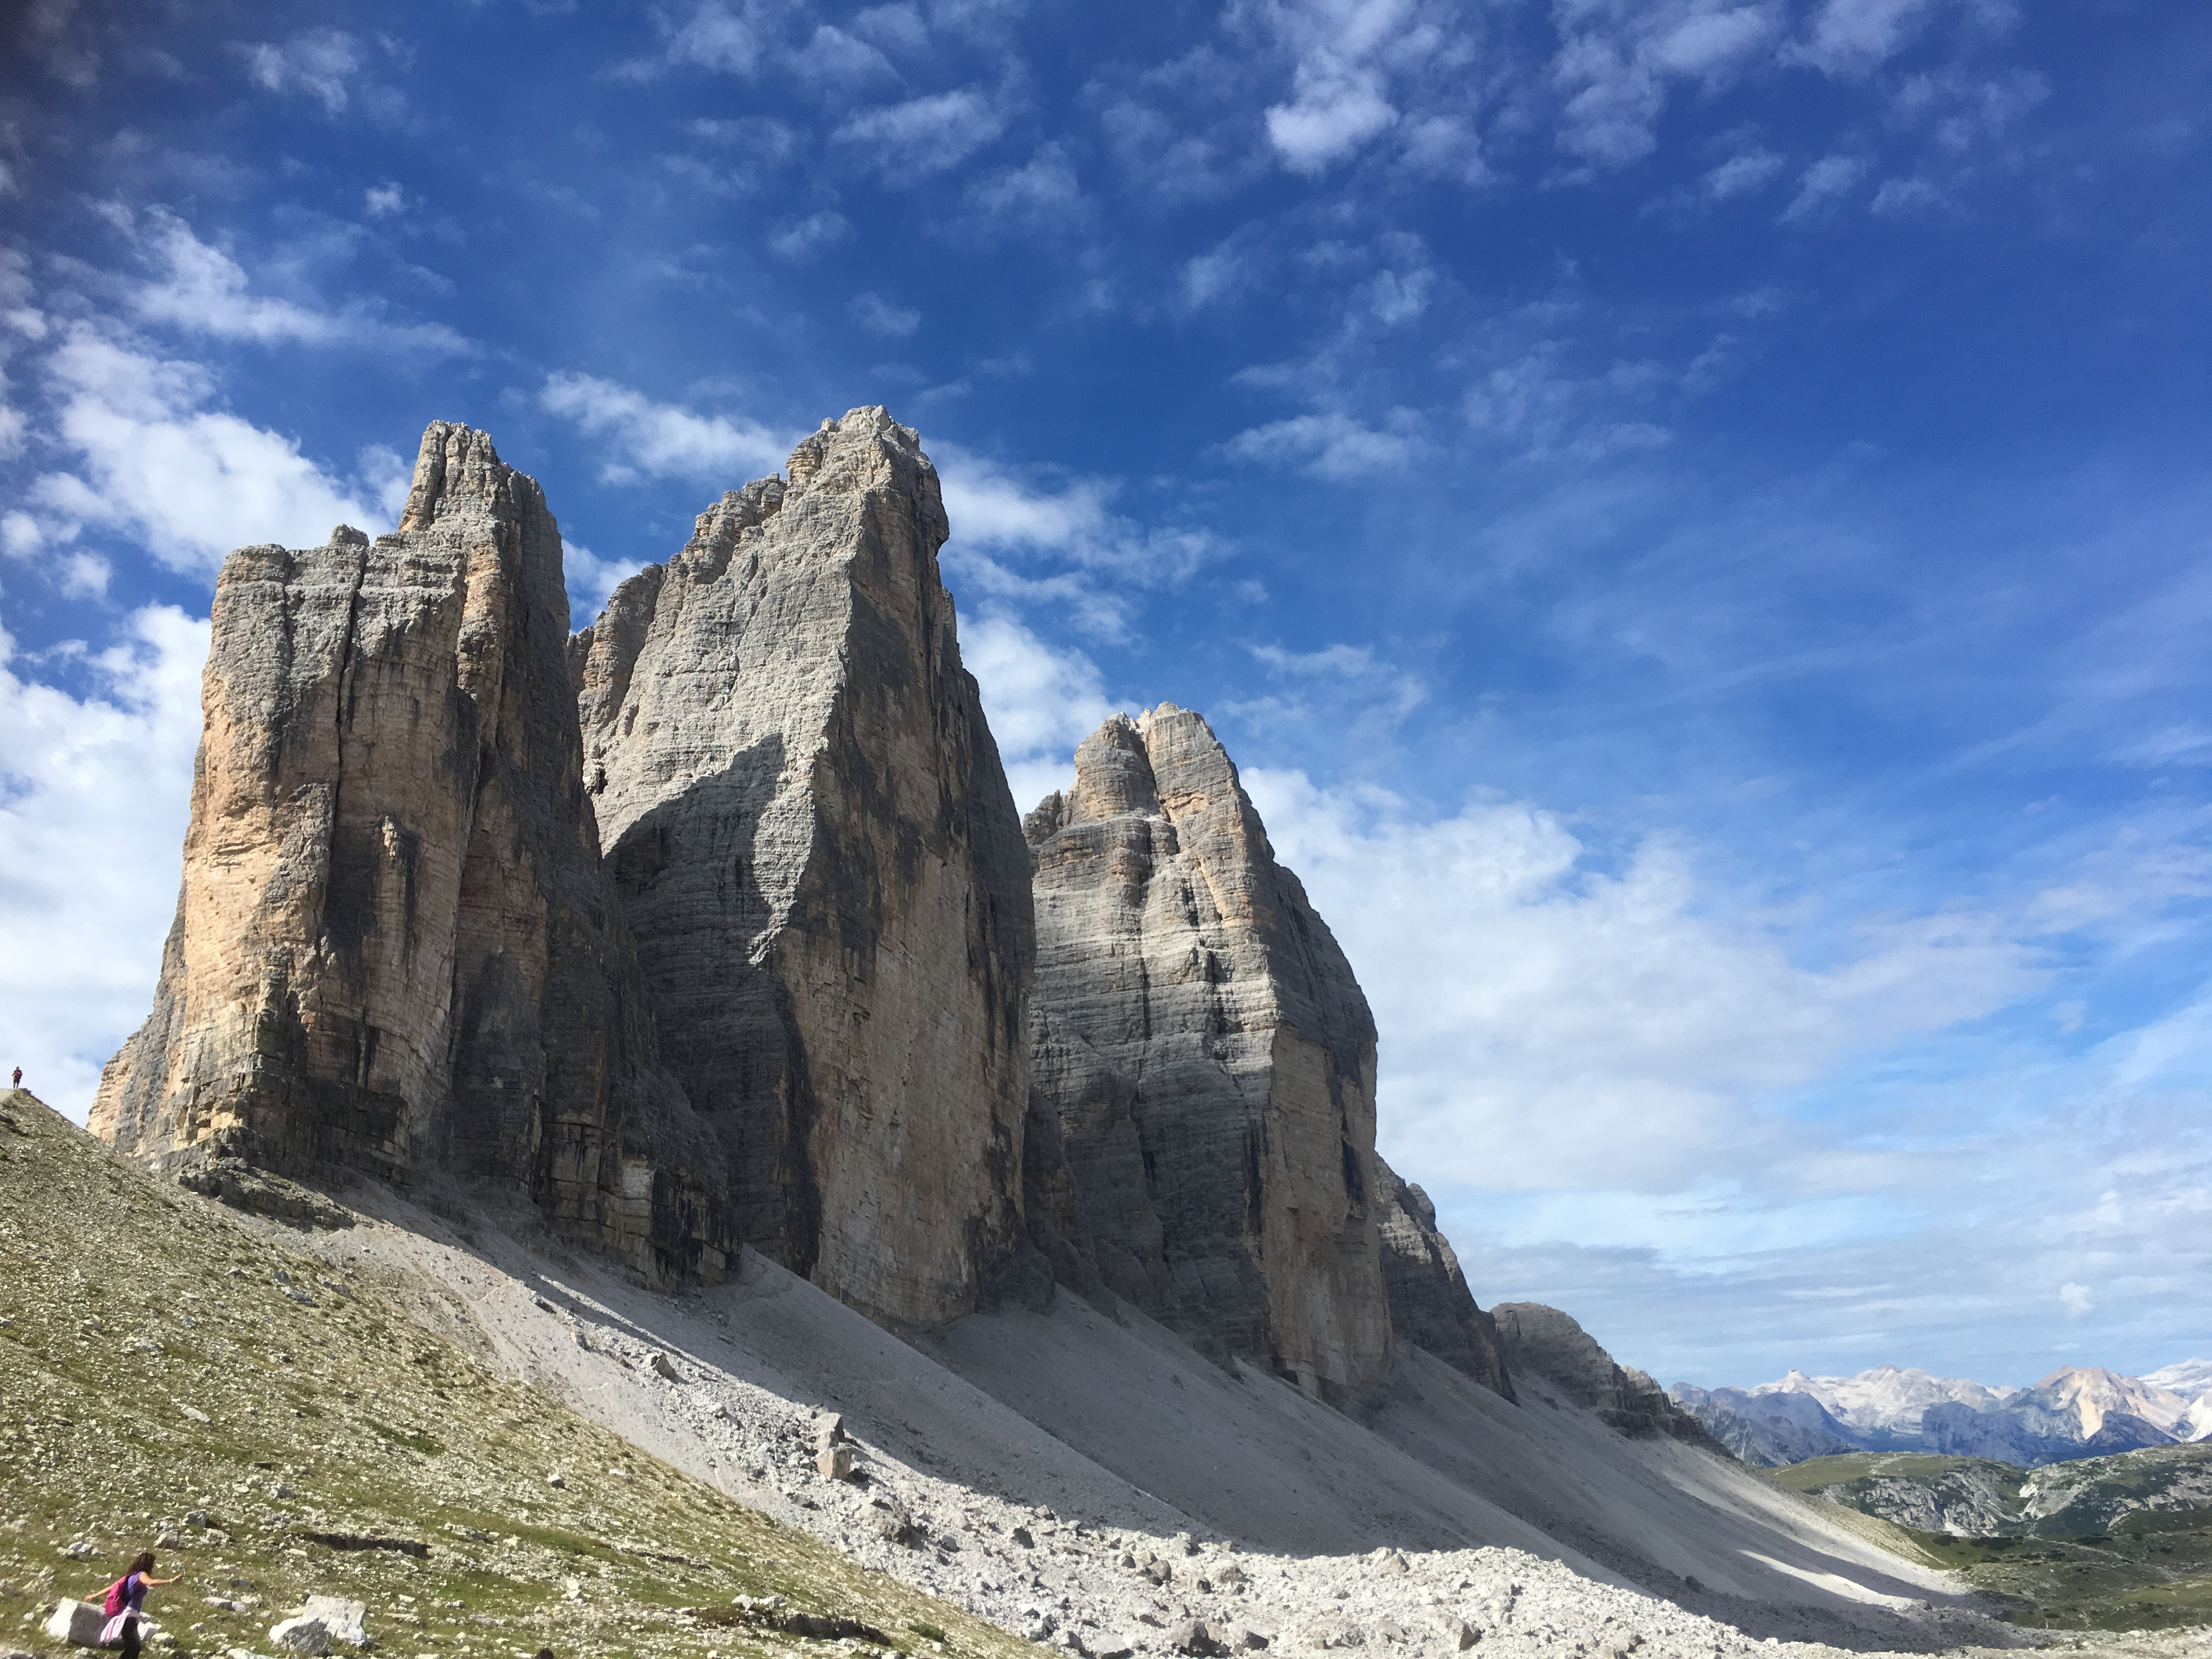 Free download high resolution image - free image free photo free stock image public domain picture -Tre Cime. Dolomite Alps, Italy